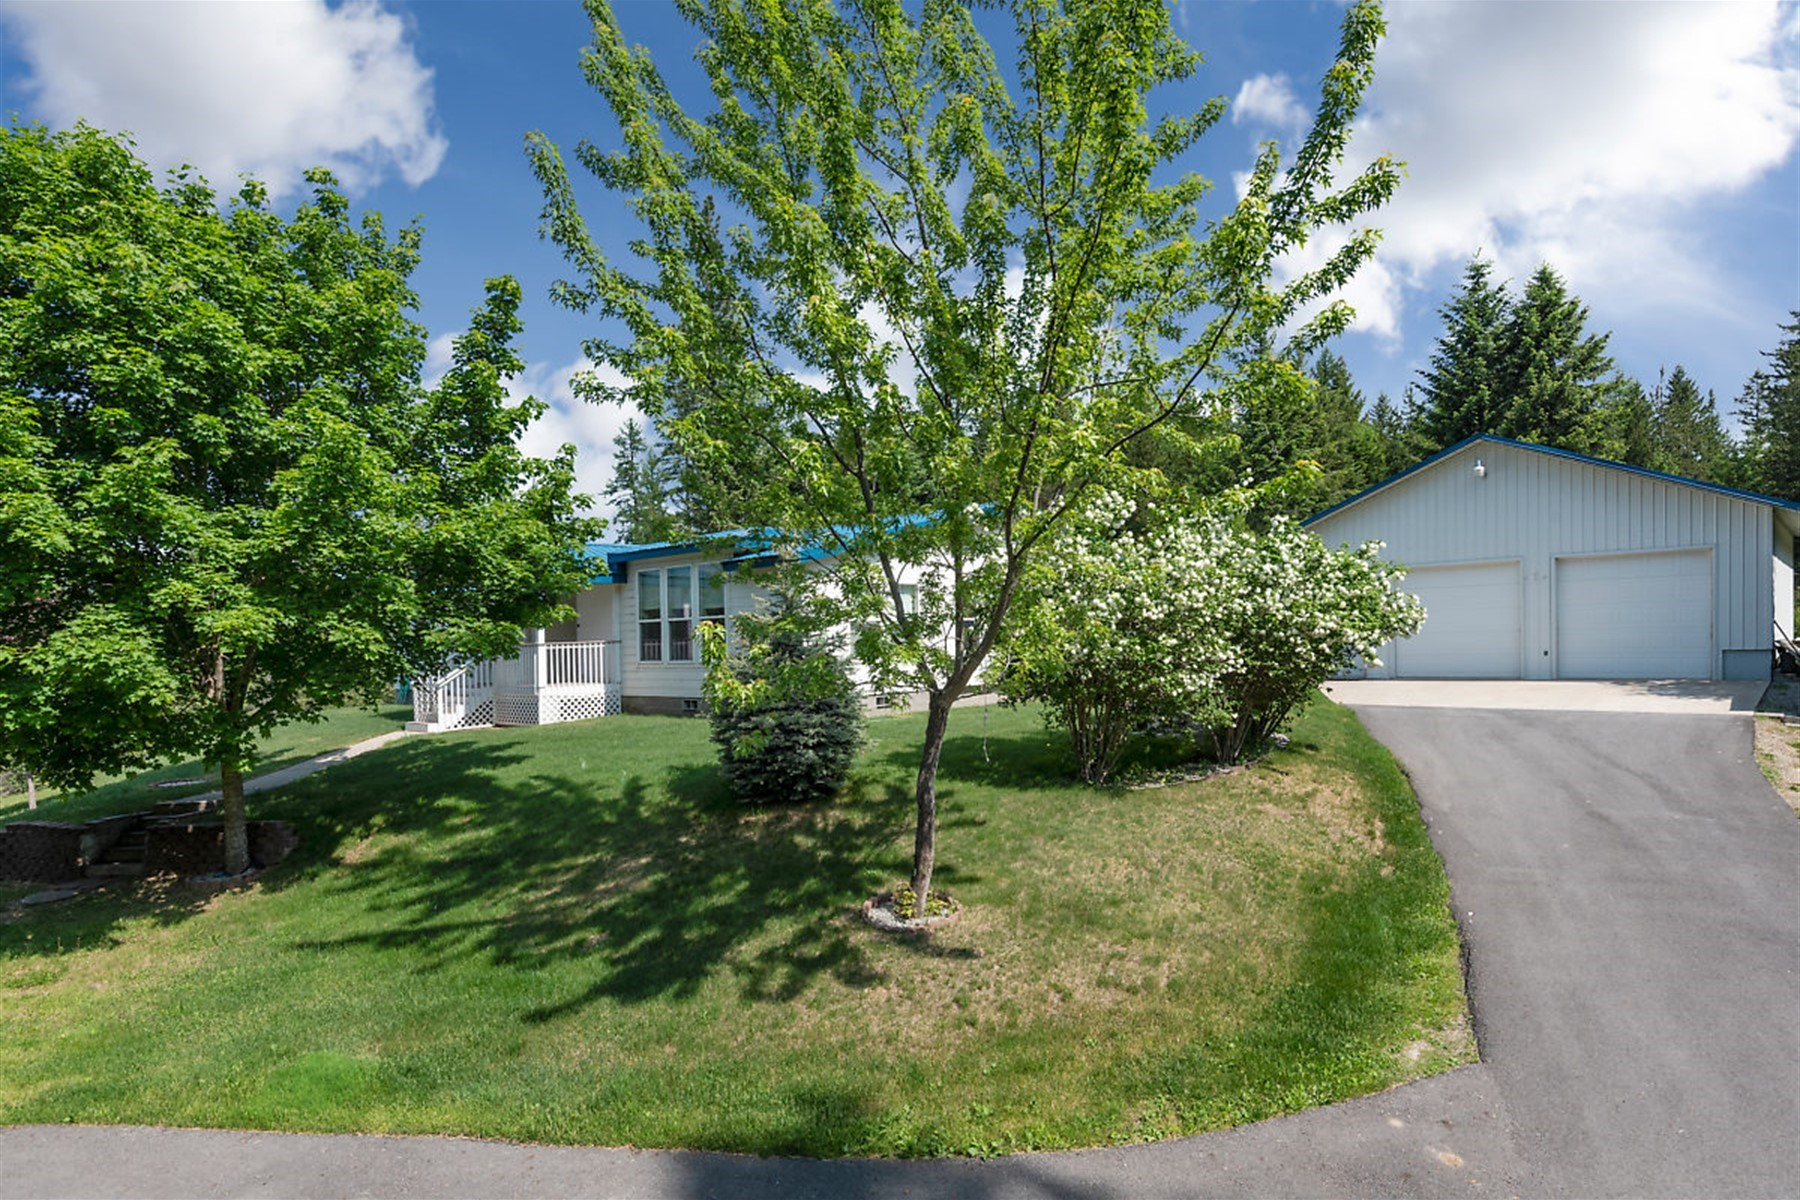 Single Family Homes for Sale at Beautiful Home on 10 acres 619 Southside School RD Cocolalla, Idaho 83813 United States